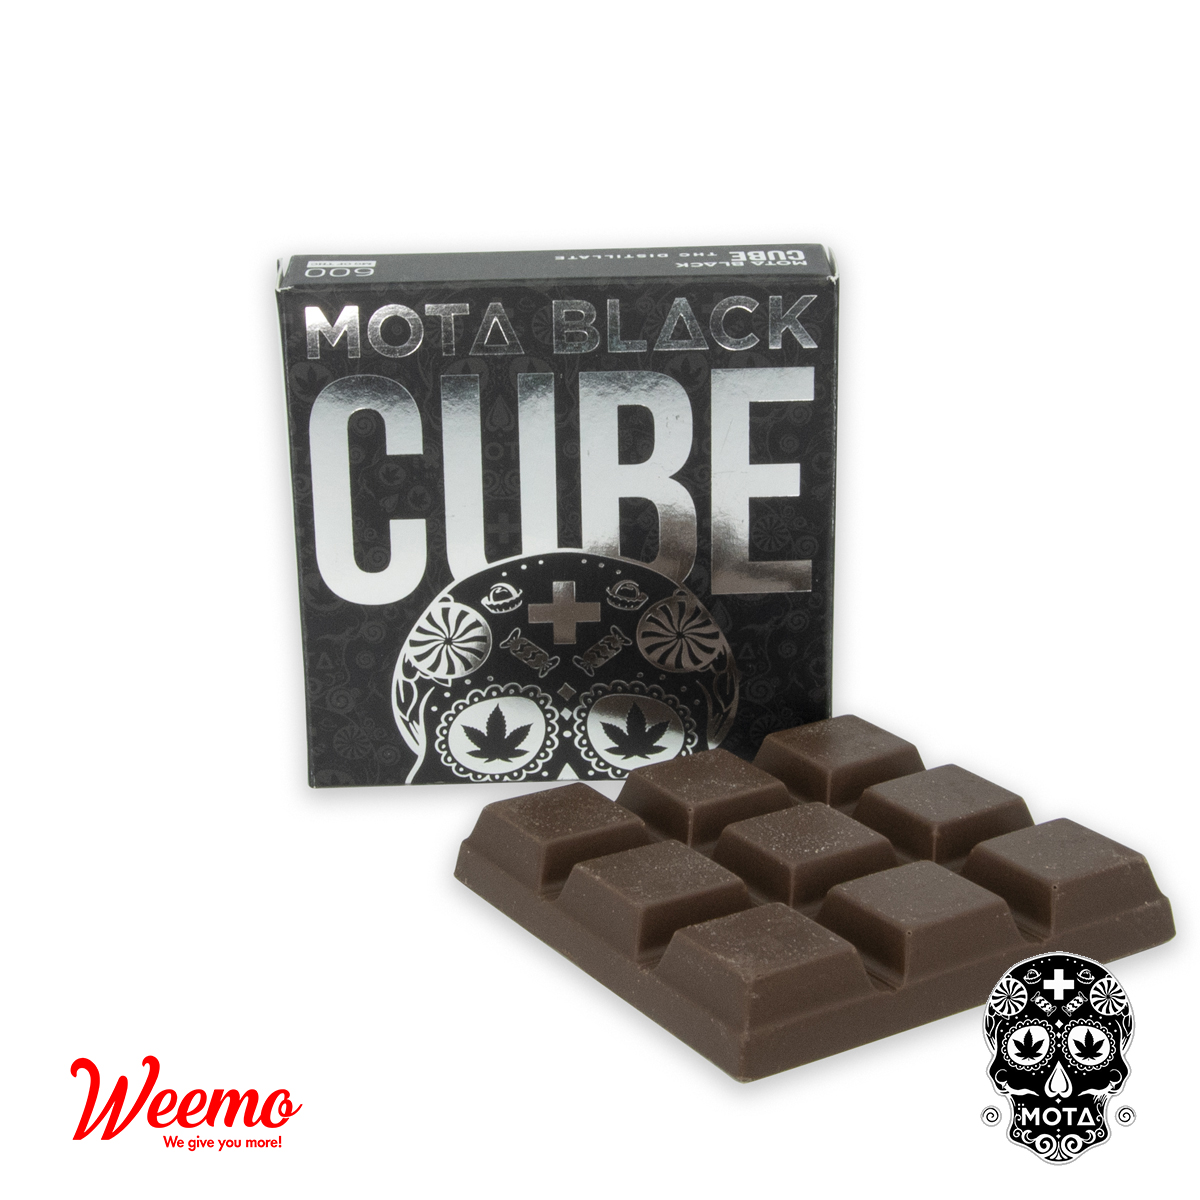 MOTA Chocolate Cubes by Weemo - Image © 2019 Weemo. All Rights Reserved.